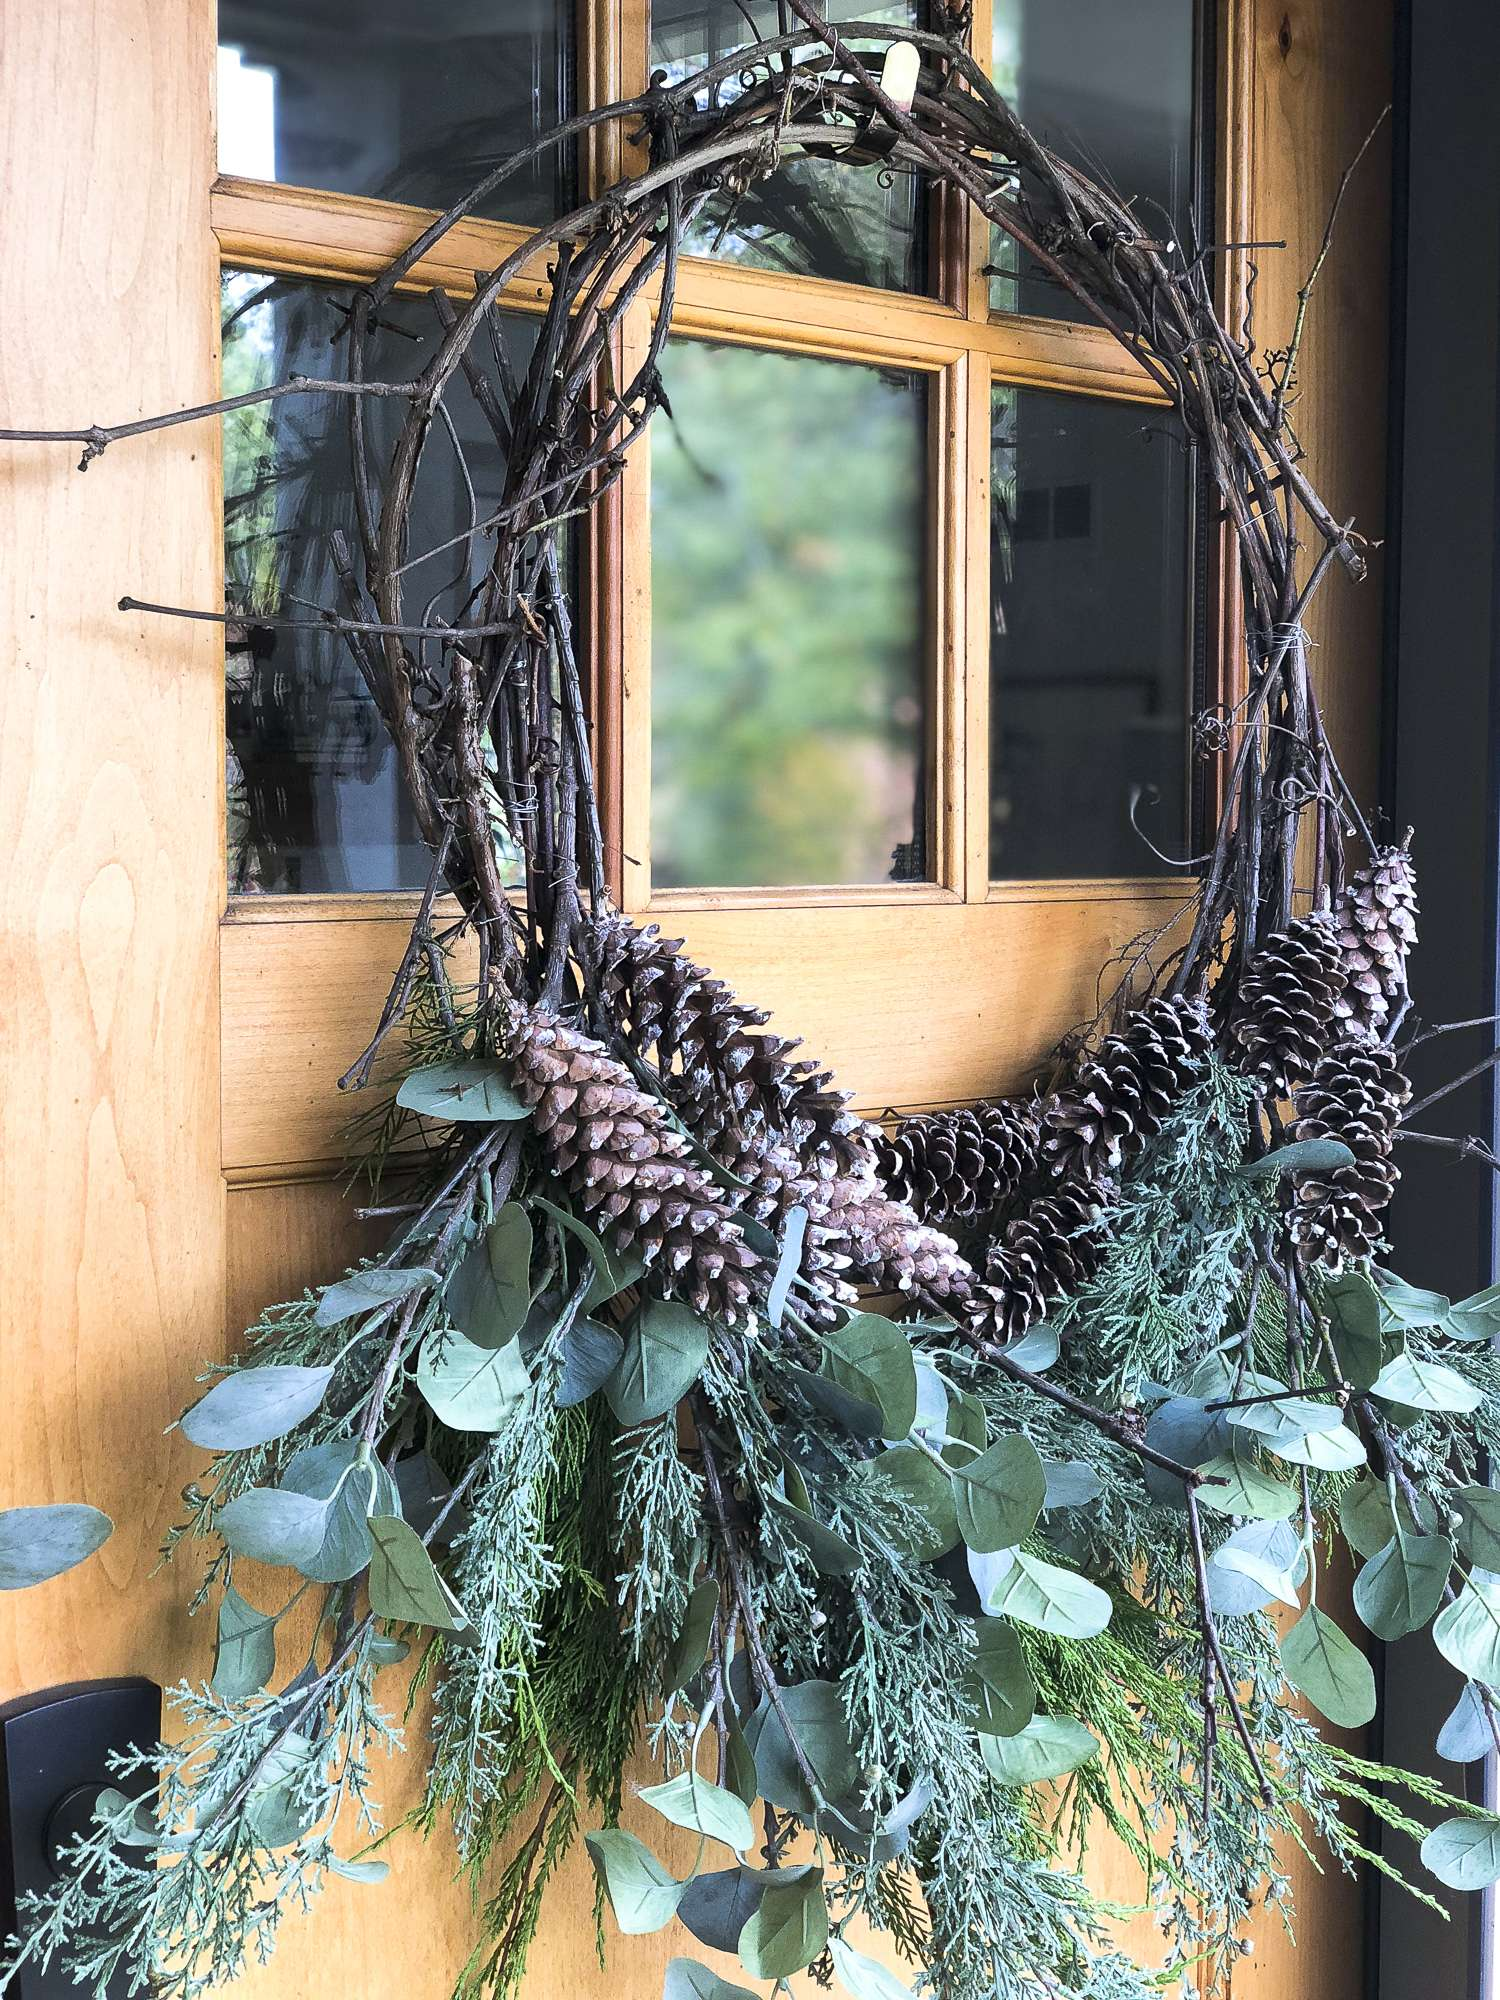 Are you looking for an affordable Christmas wreath? Make your own! Click for a tutorial on how to make a DIY Christmas grapevine wreath. #christmaswreath